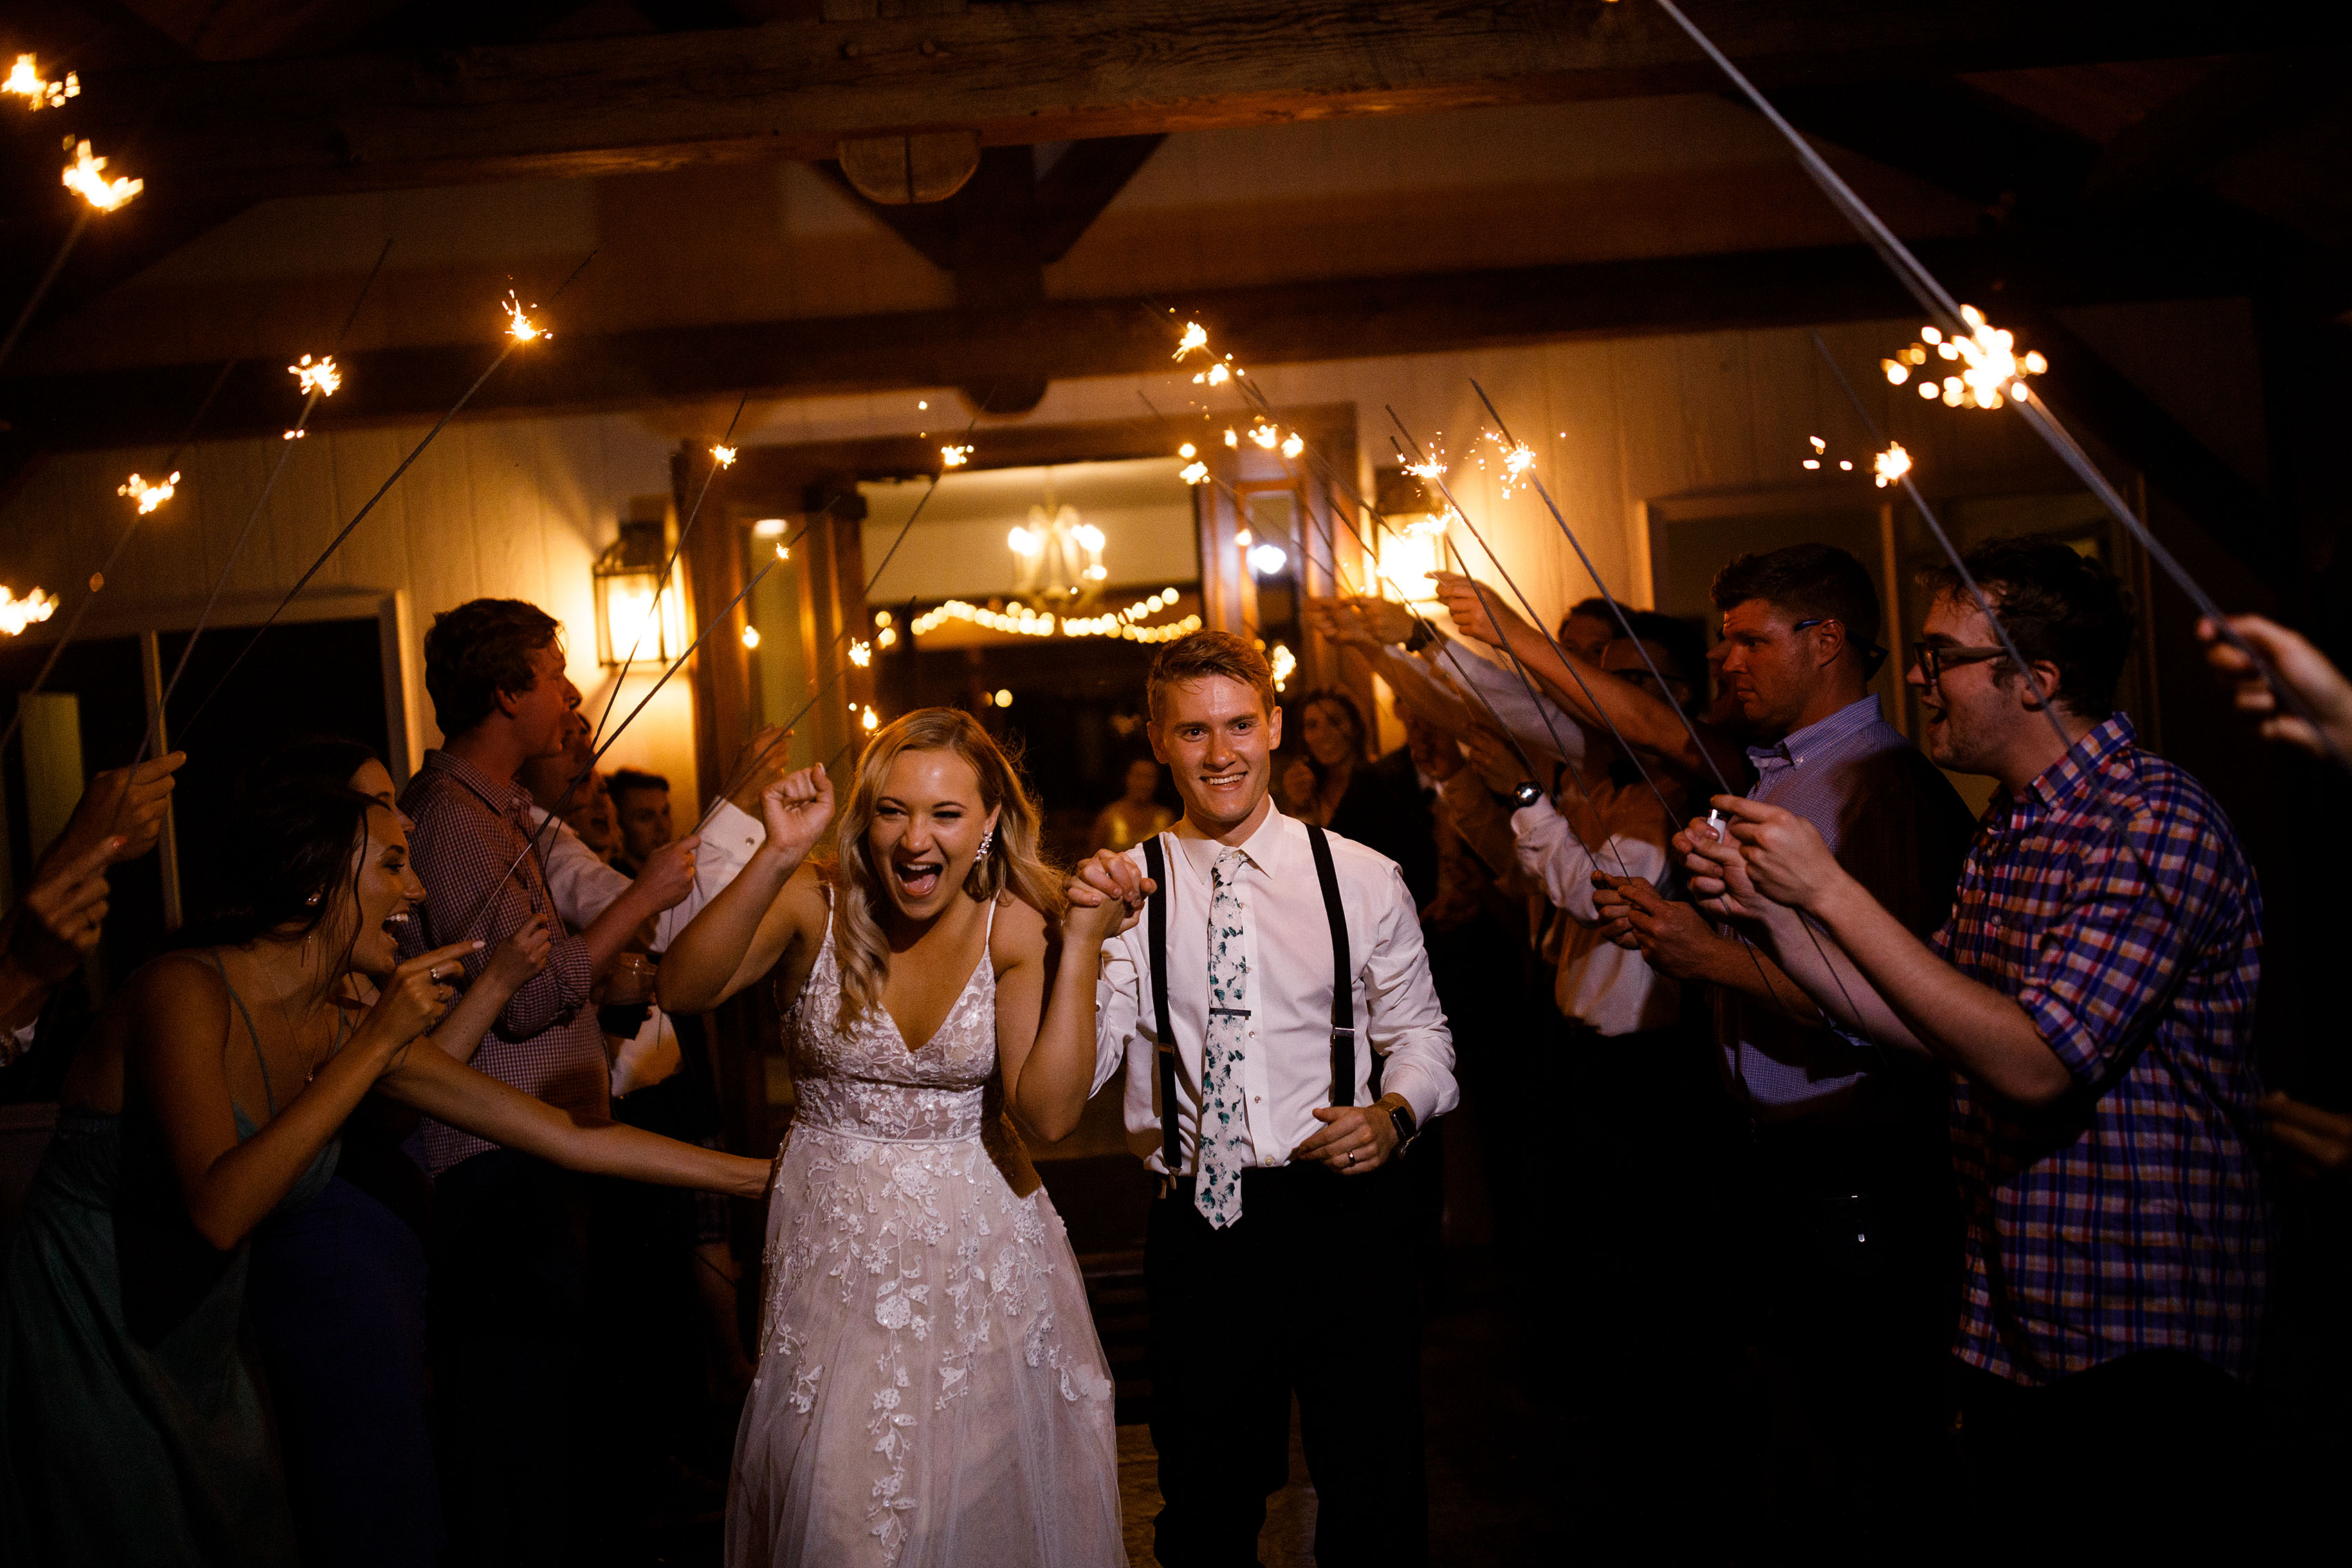 The newlyweds exit their Emerson Fields wedding through a tunnel of sparklers